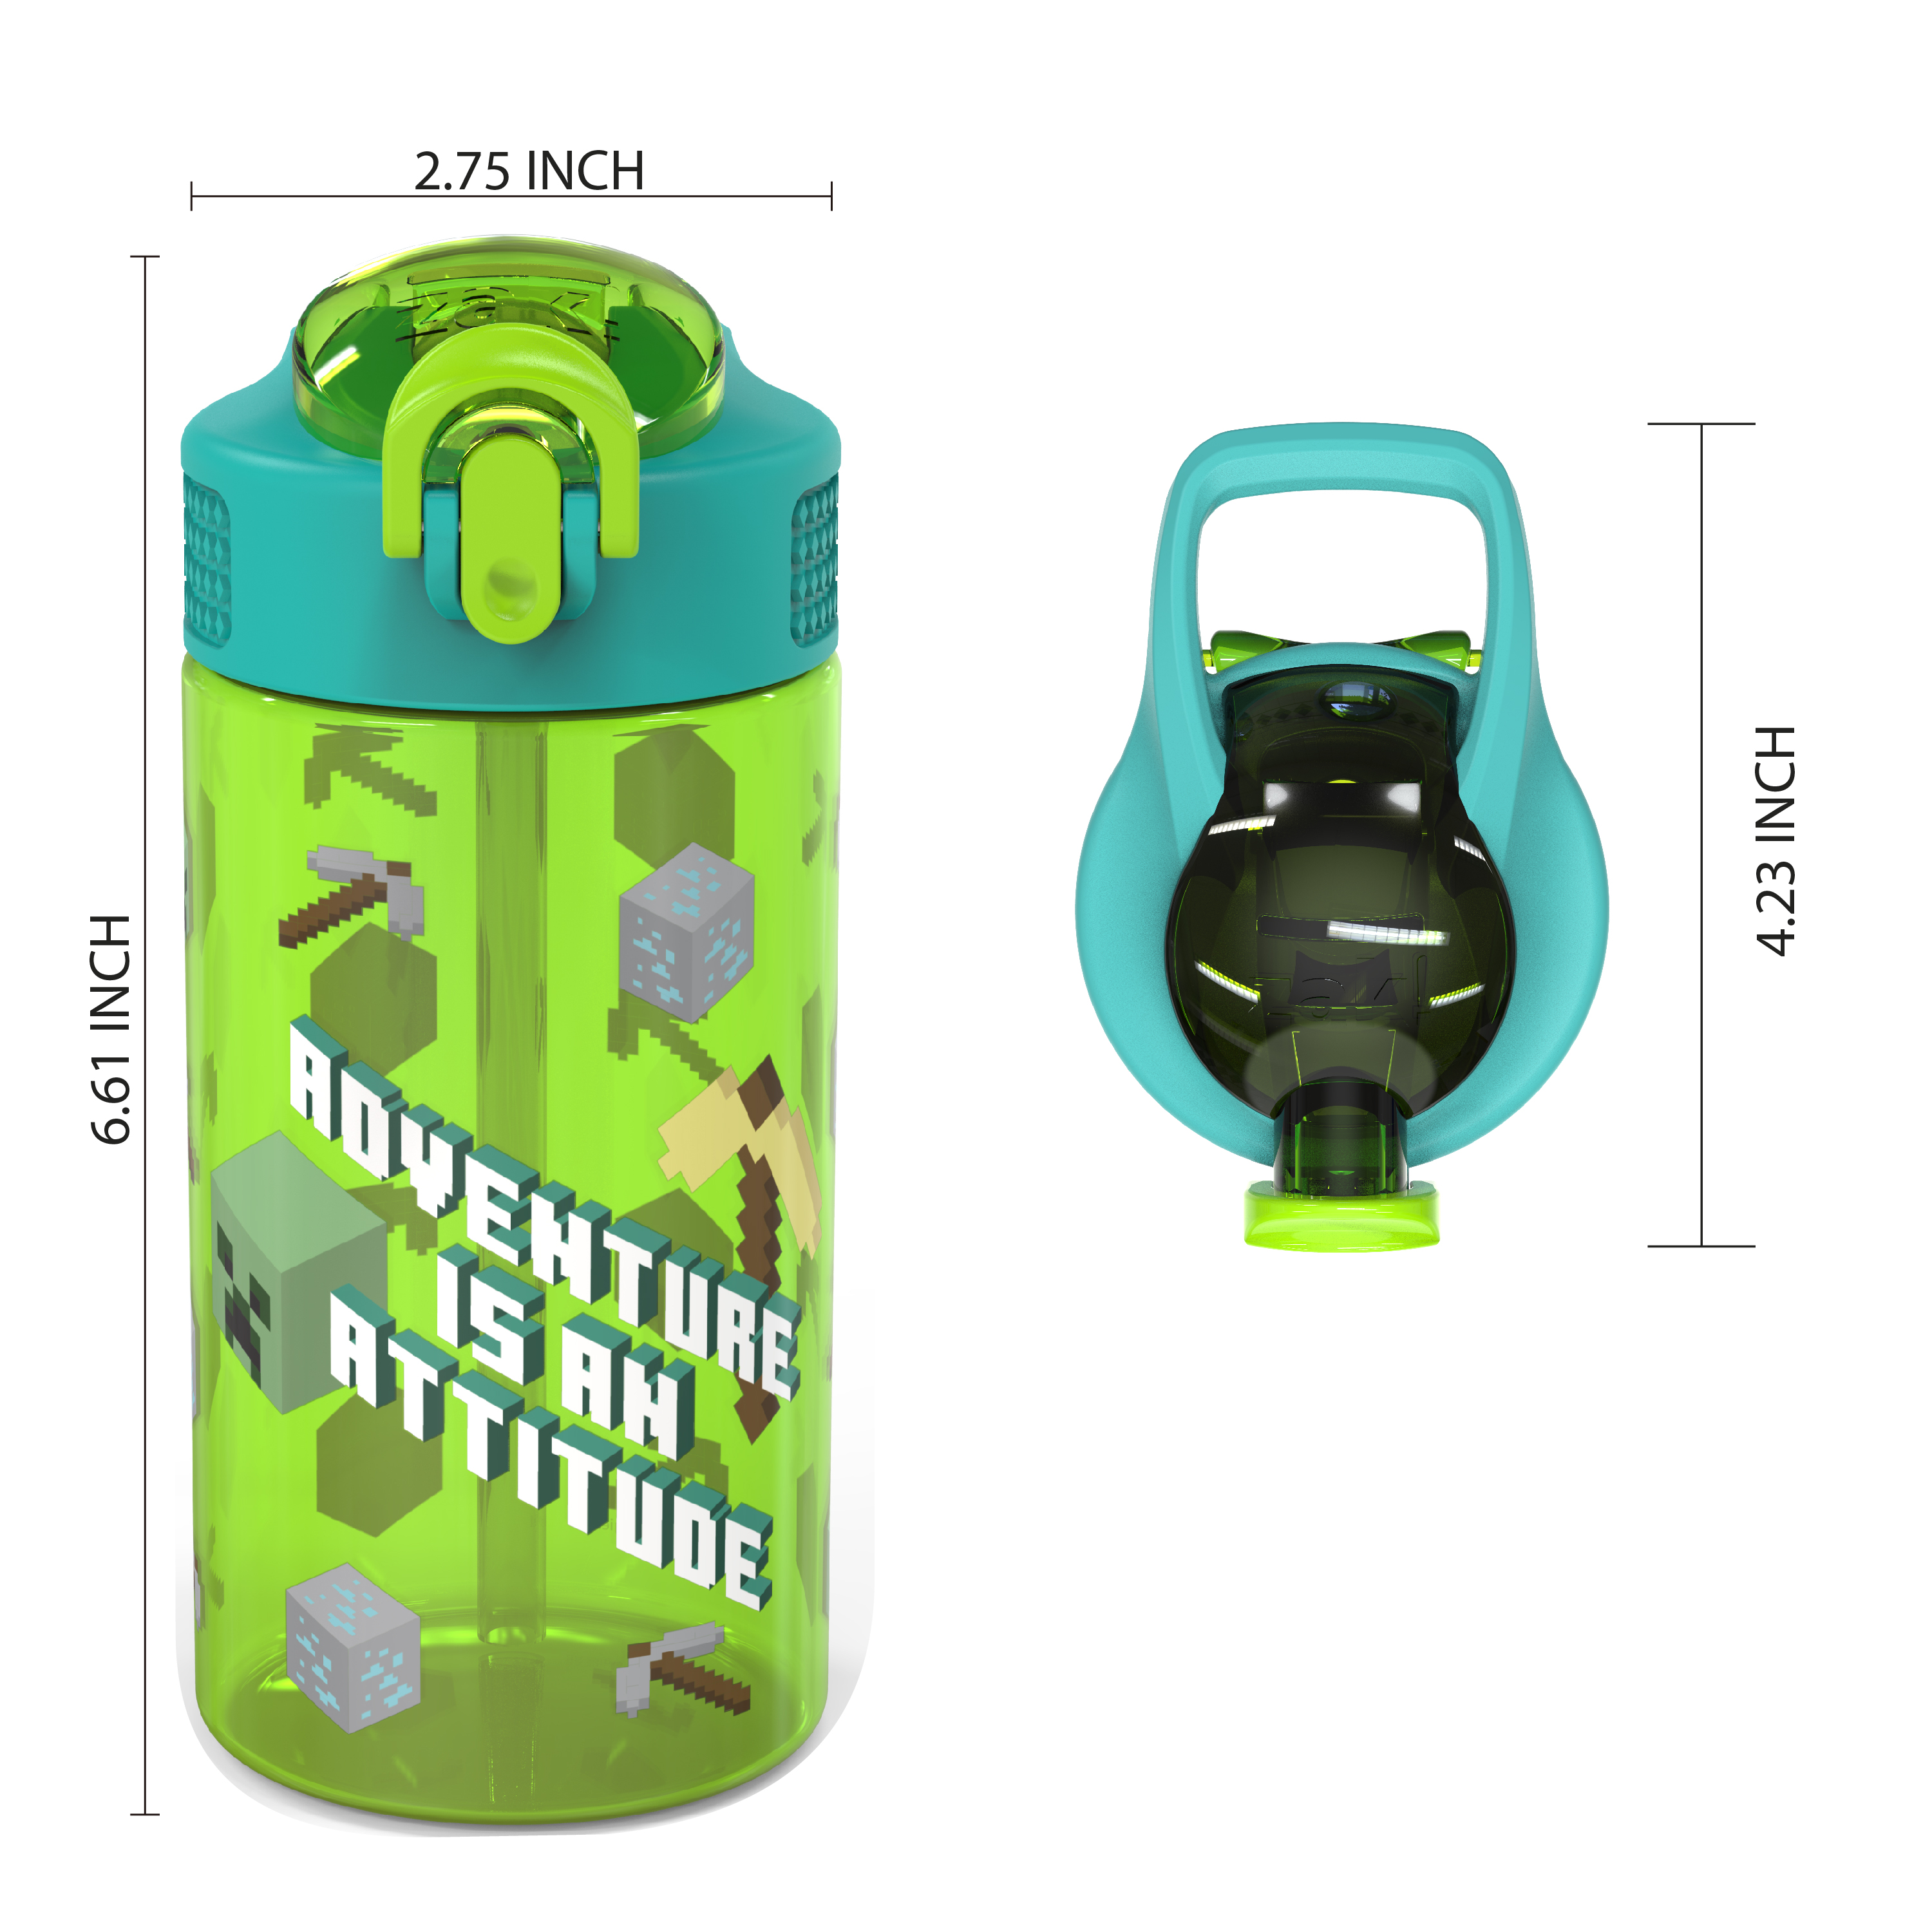 Minecraft 16 ounce Reusable Plastic Water Bottle with Straw, Creeper, 2-piece set slideshow image 6